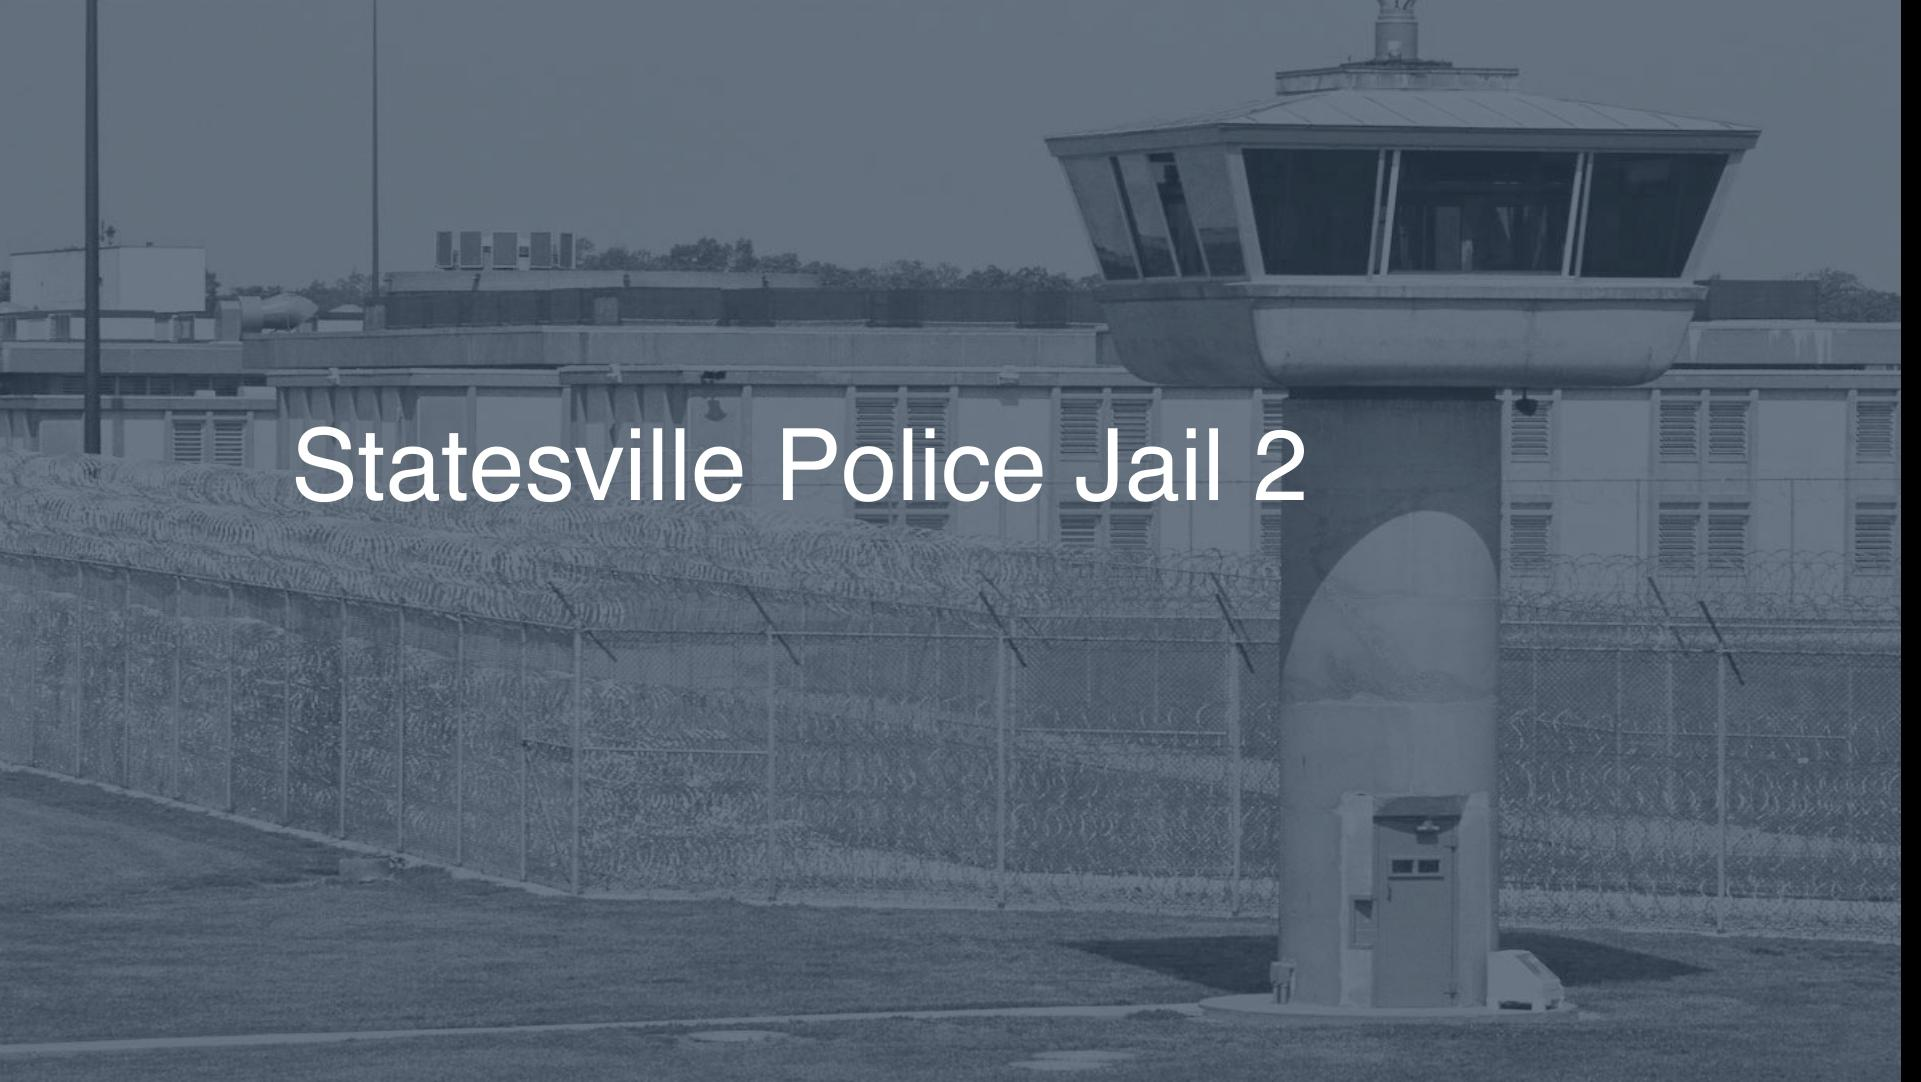 Statesville Police Jail correctional facility picture